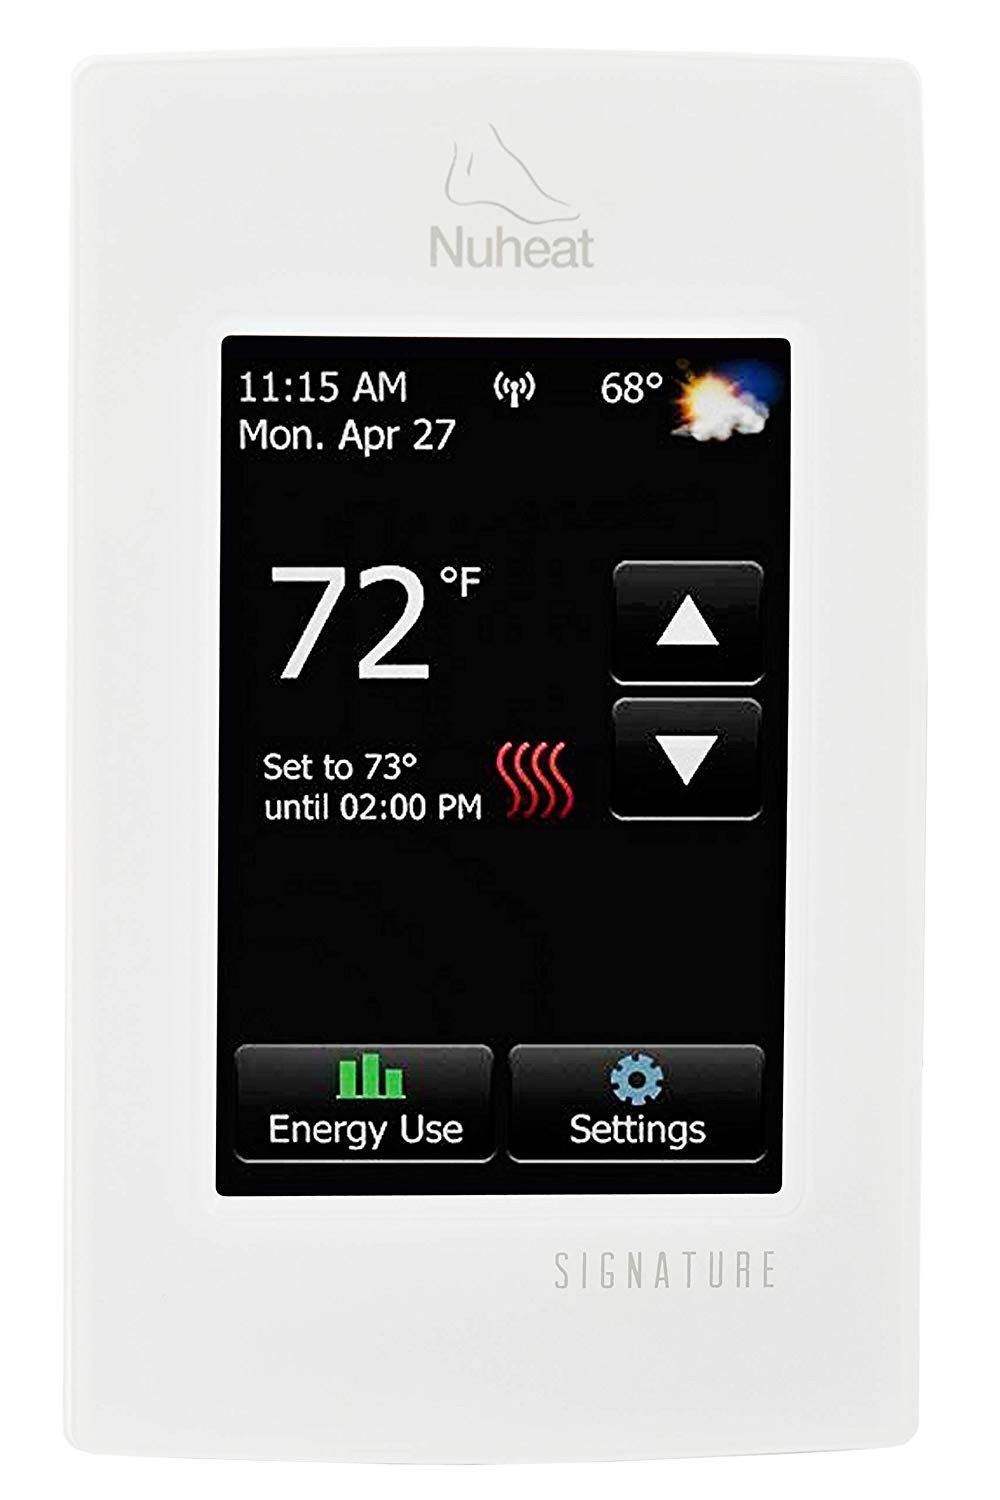 Nuheat SIGNATURE Programmable Dual Voltage Thermostat with WiFi and Touchscreen Interface Works with NEST Amazon